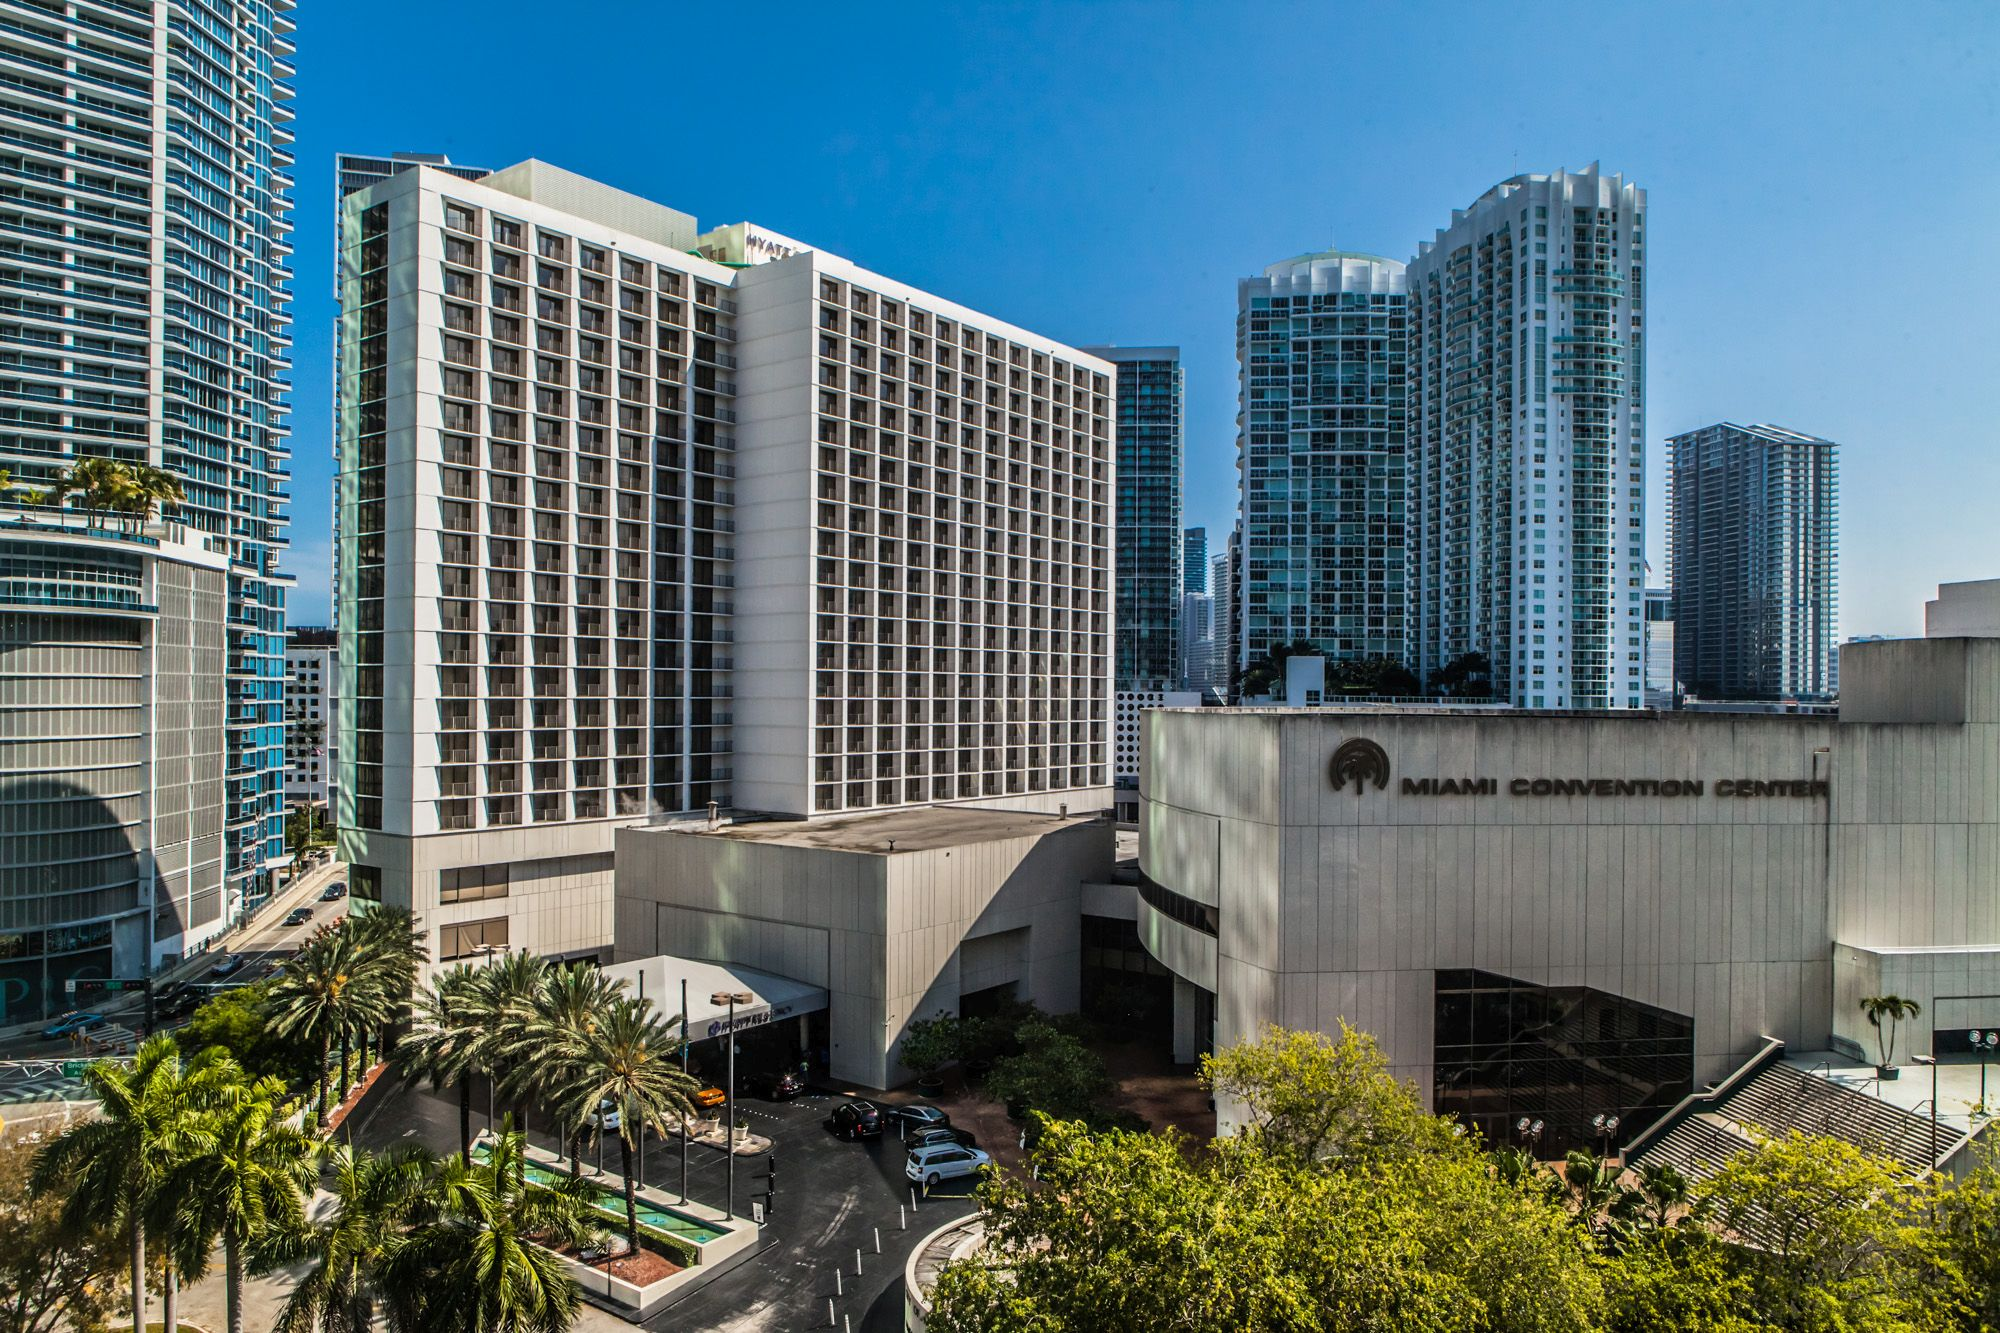 Hotel Review: Hyatt Regency Miami Downtown – Miami Suite